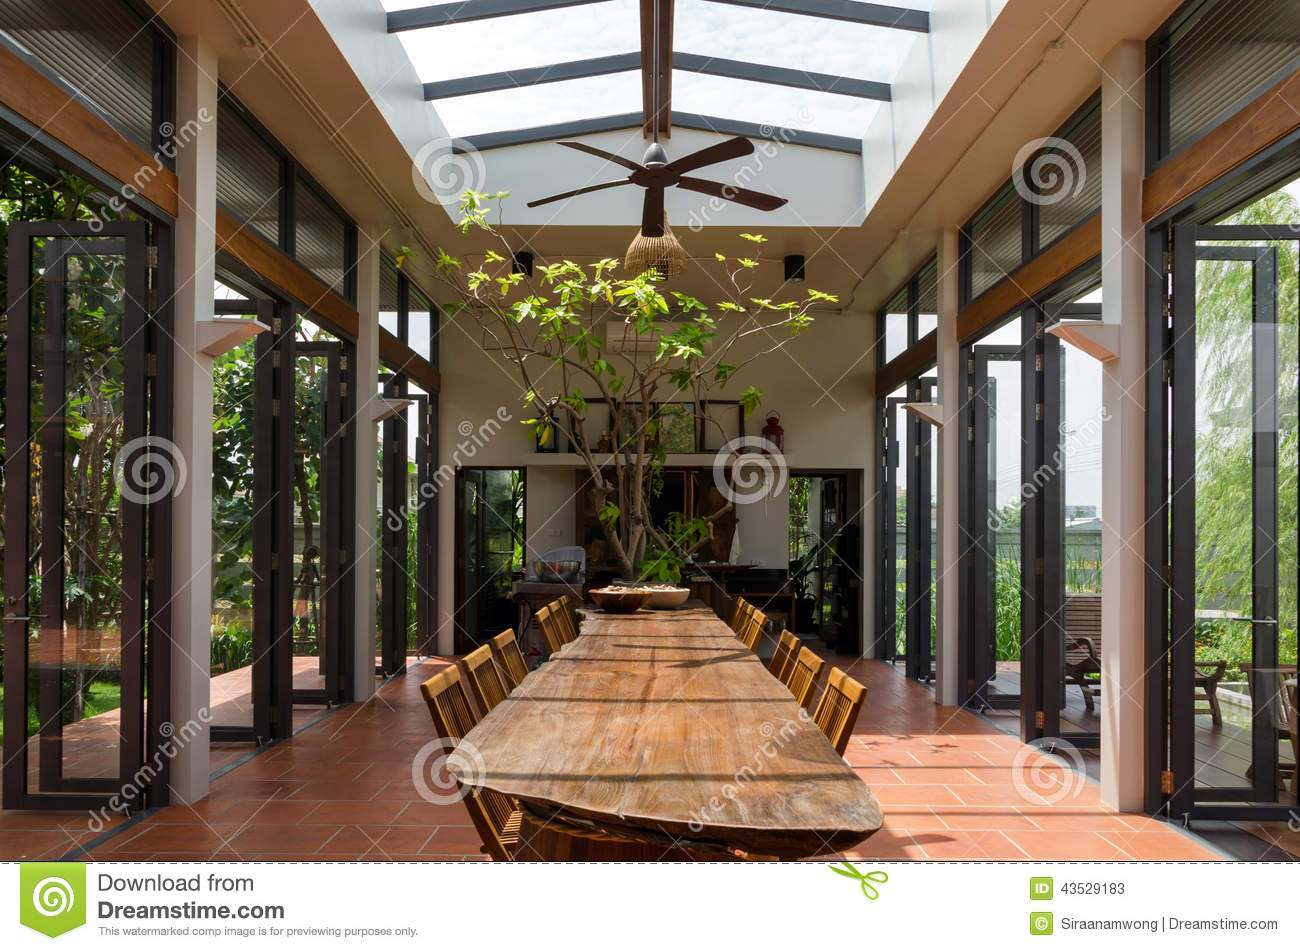 Dining Room With Skylight Stock Image Image Of Luxury